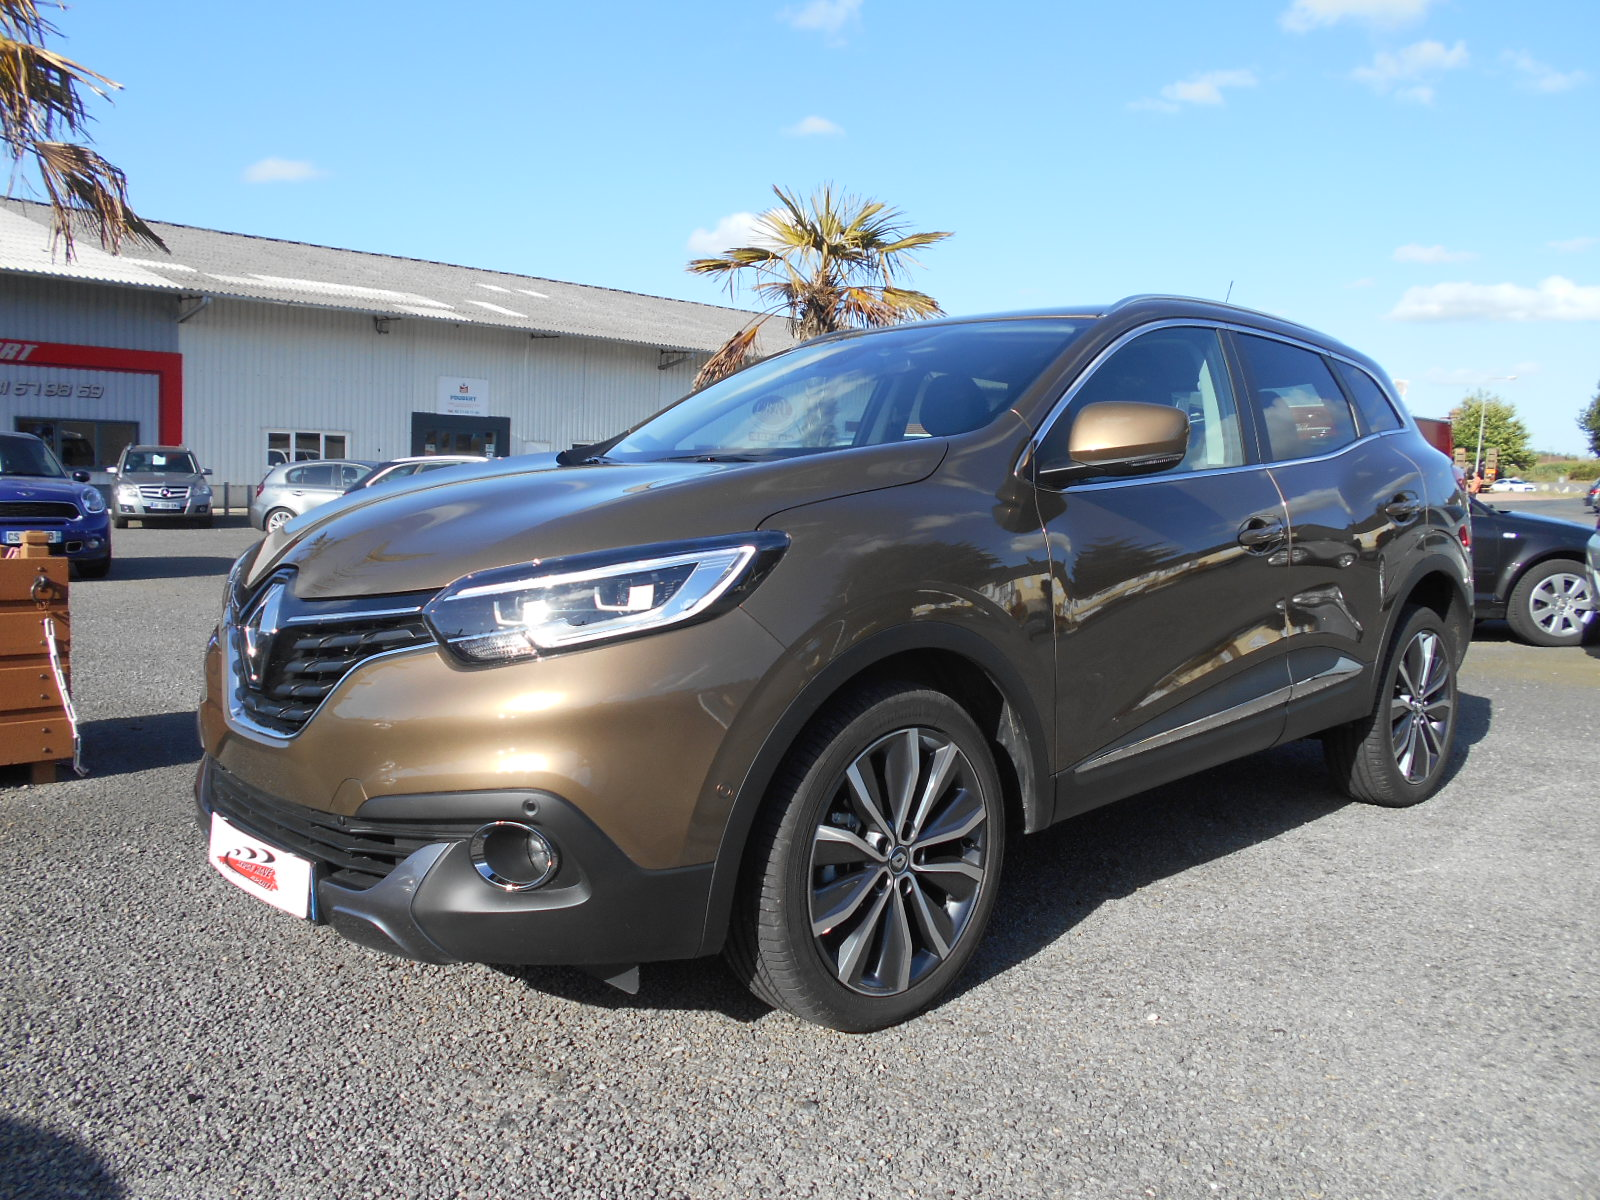 renault kadjar 1 6 dci 130 energy intens 4wd serge have sport. Black Bedroom Furniture Sets. Home Design Ideas